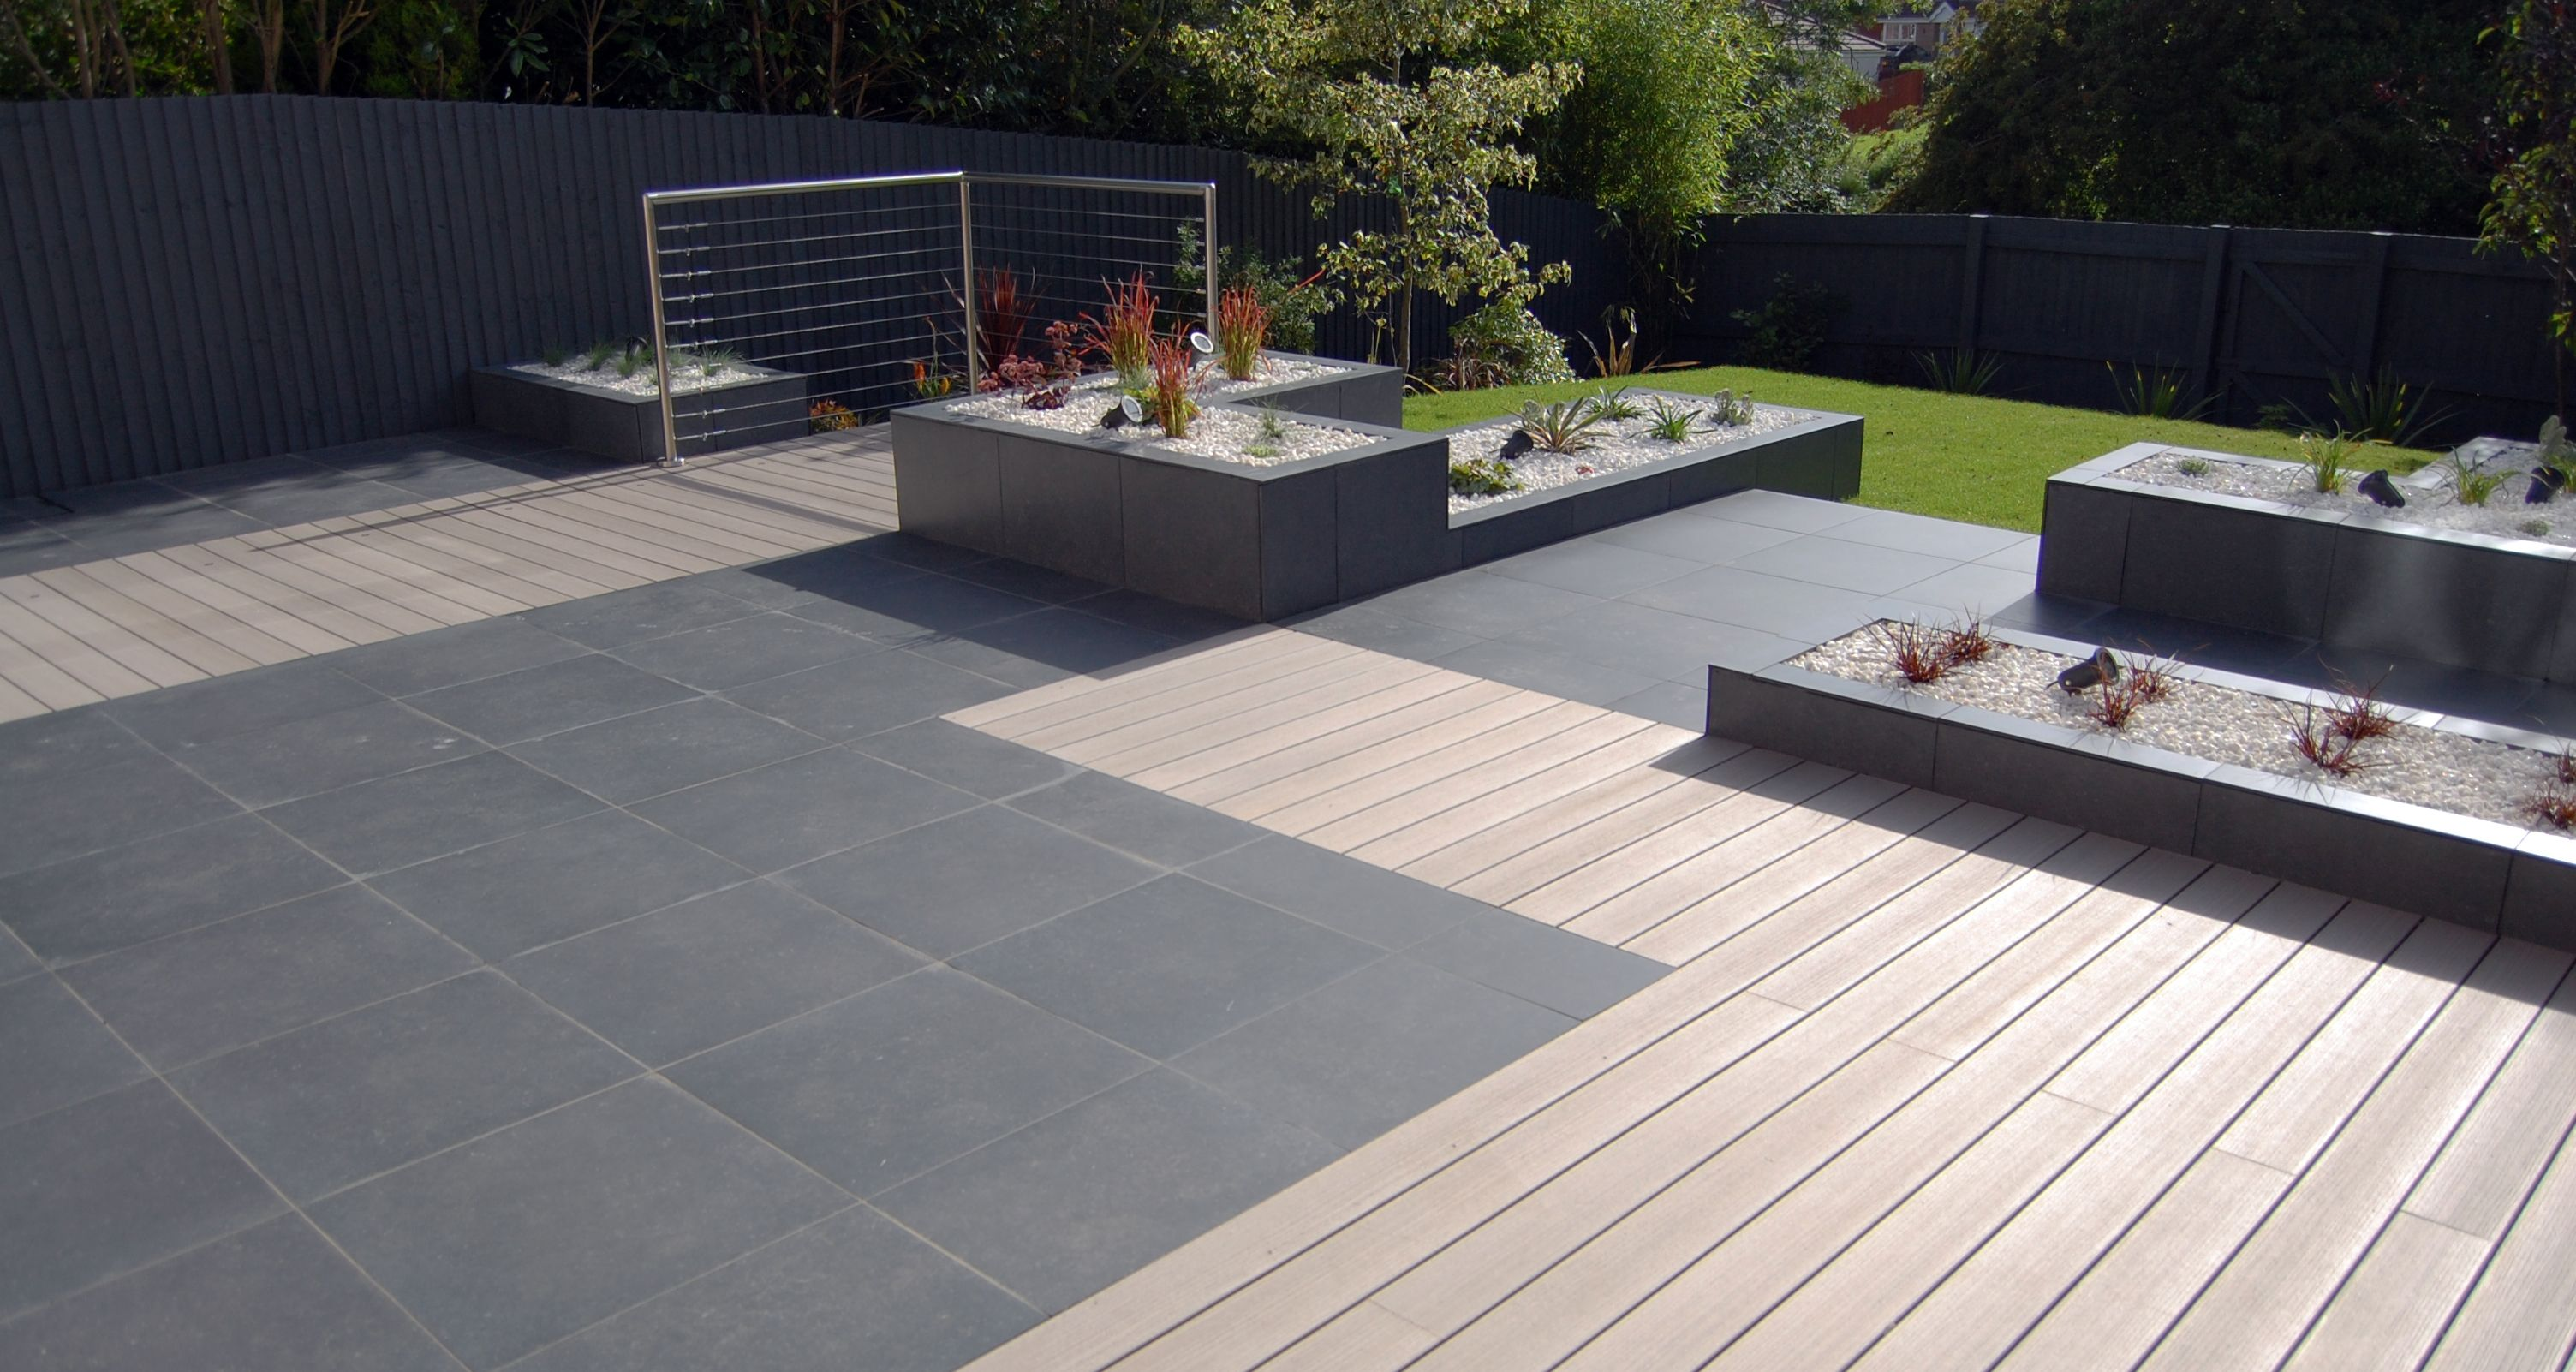 Porcelain Paving And Composite Decking, Minimalist Style Garden Design By  Robert Hughes